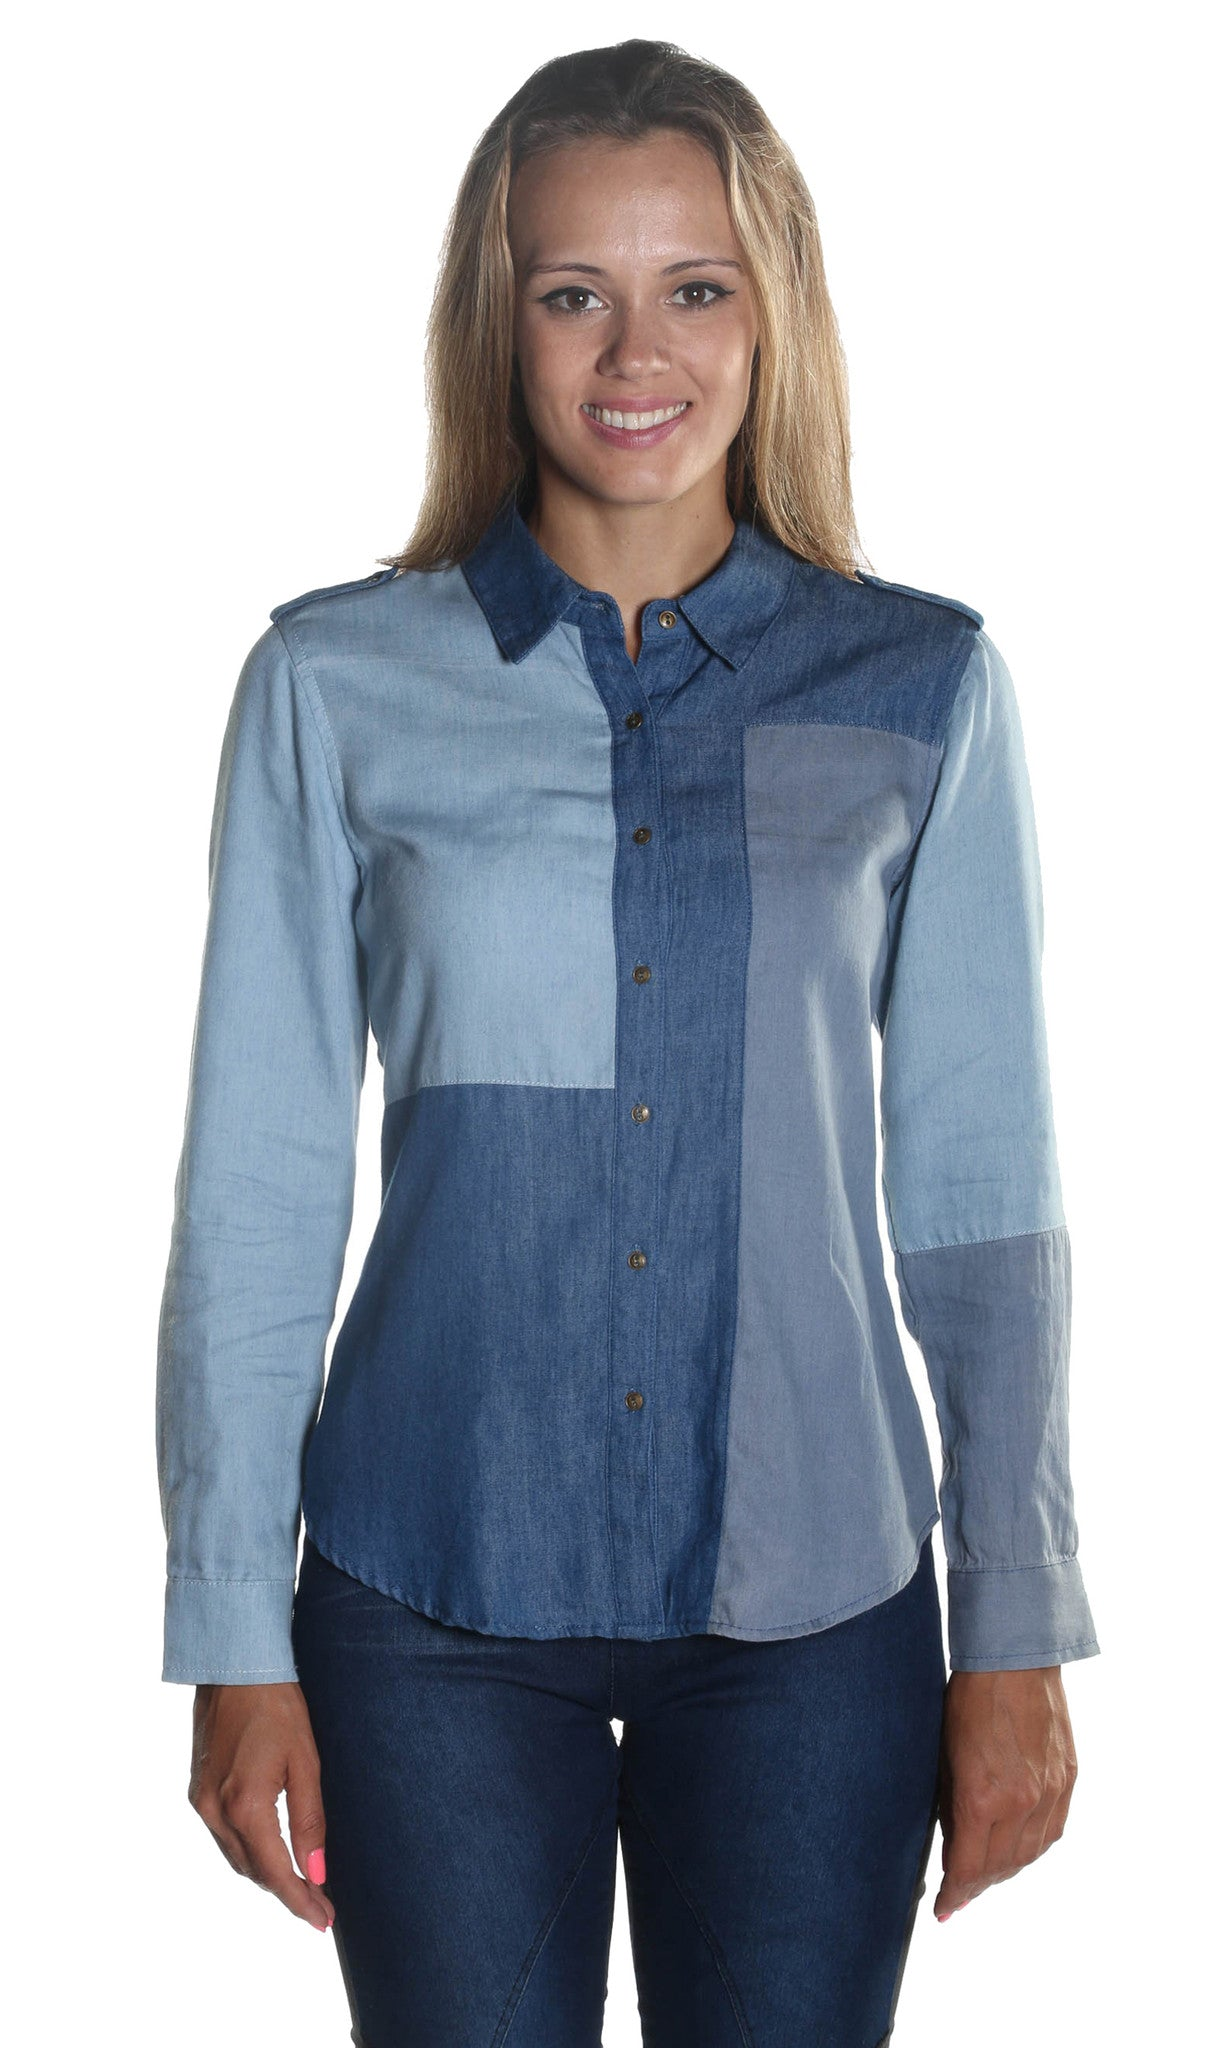 Patched Denim Blouse